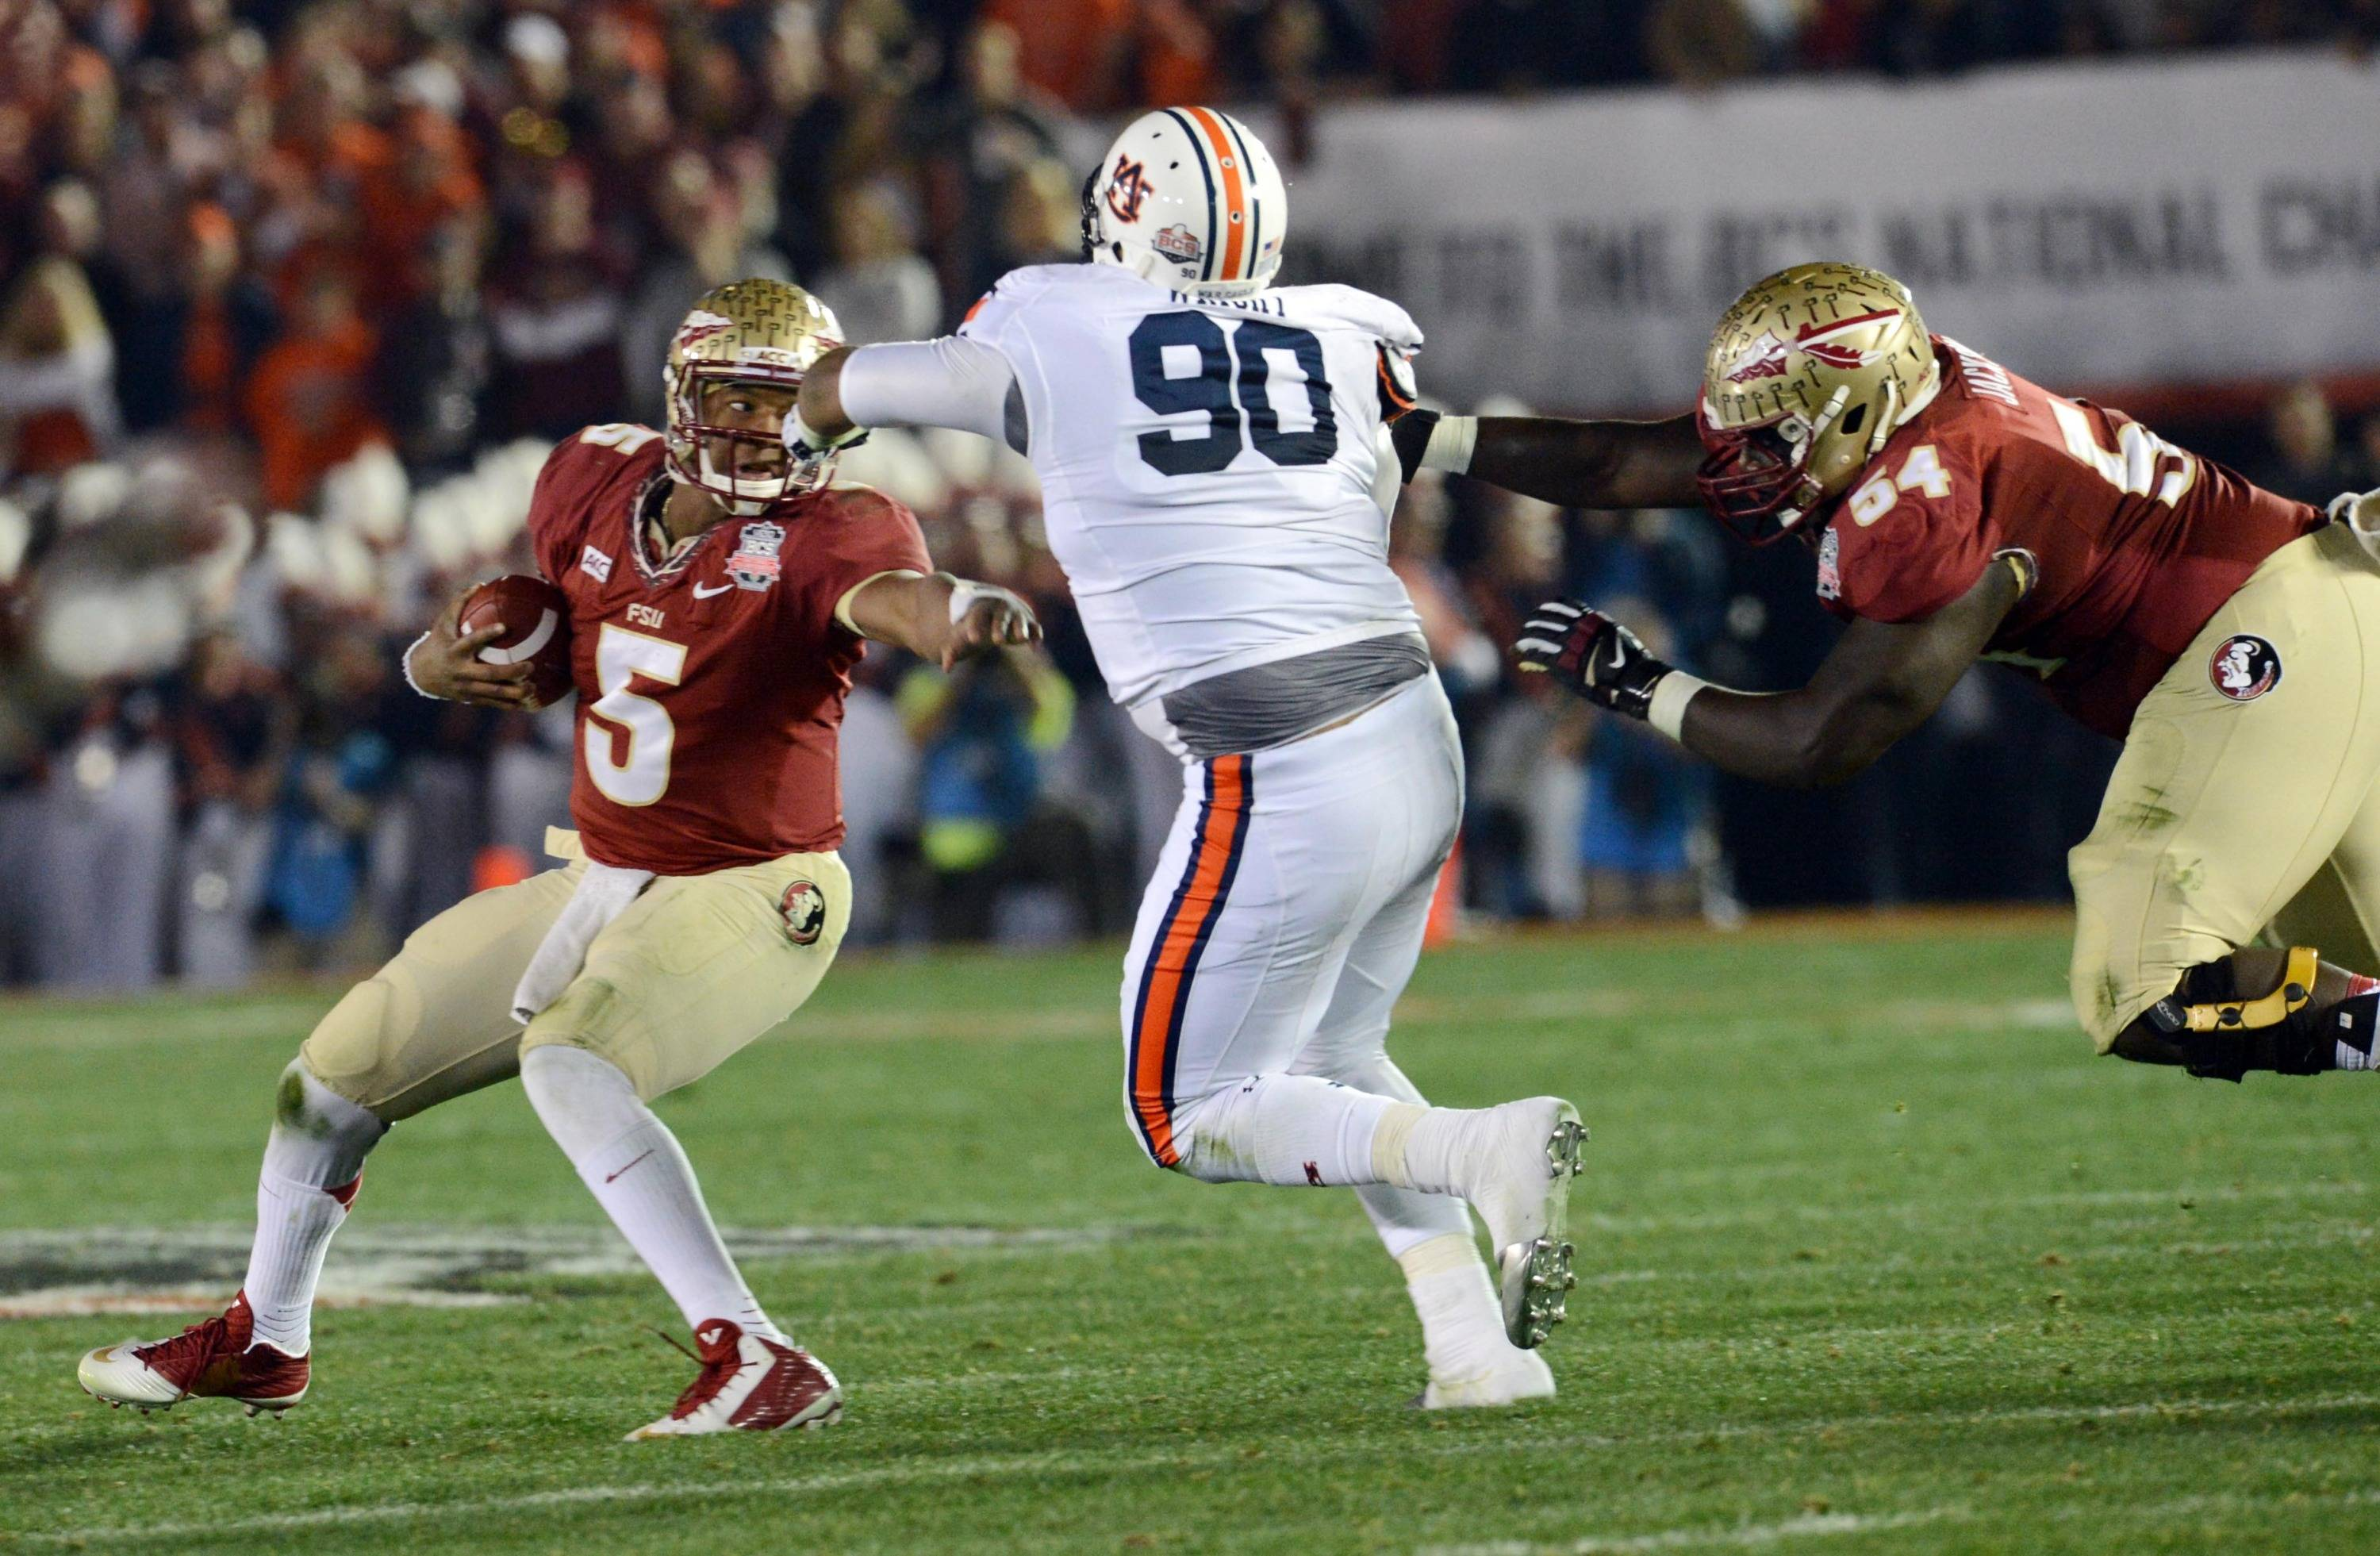 Jan 6, 2014; Pasadena, CA, USA; Florida State Seminoles quarterback Jameis Winston (5) runs against the Auburn Tigers during the first half of the 2014 BCS National Championship game at the Rose Bowl.  Mandatory Credit: Jayne Kamin-Oncea-USA TODAY Sports